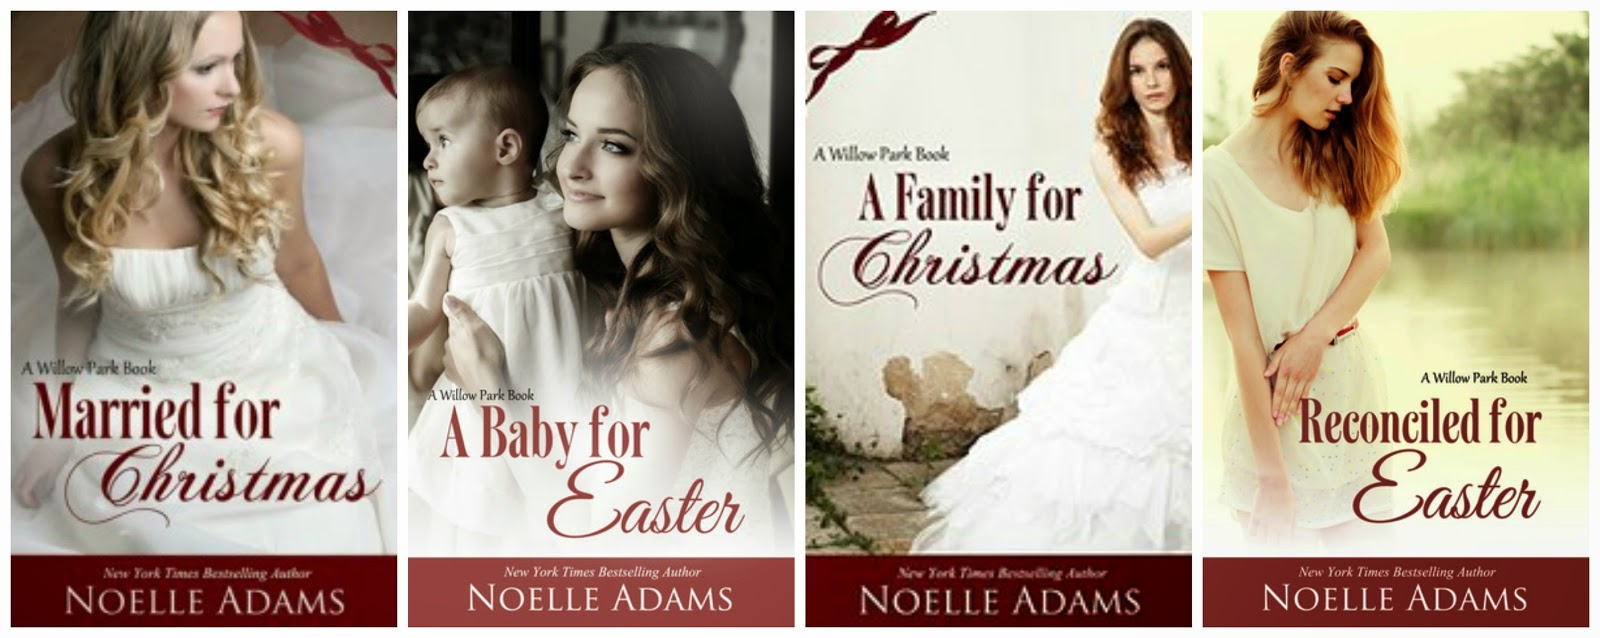 Book covers: Willow Park Series by Noelle Adams